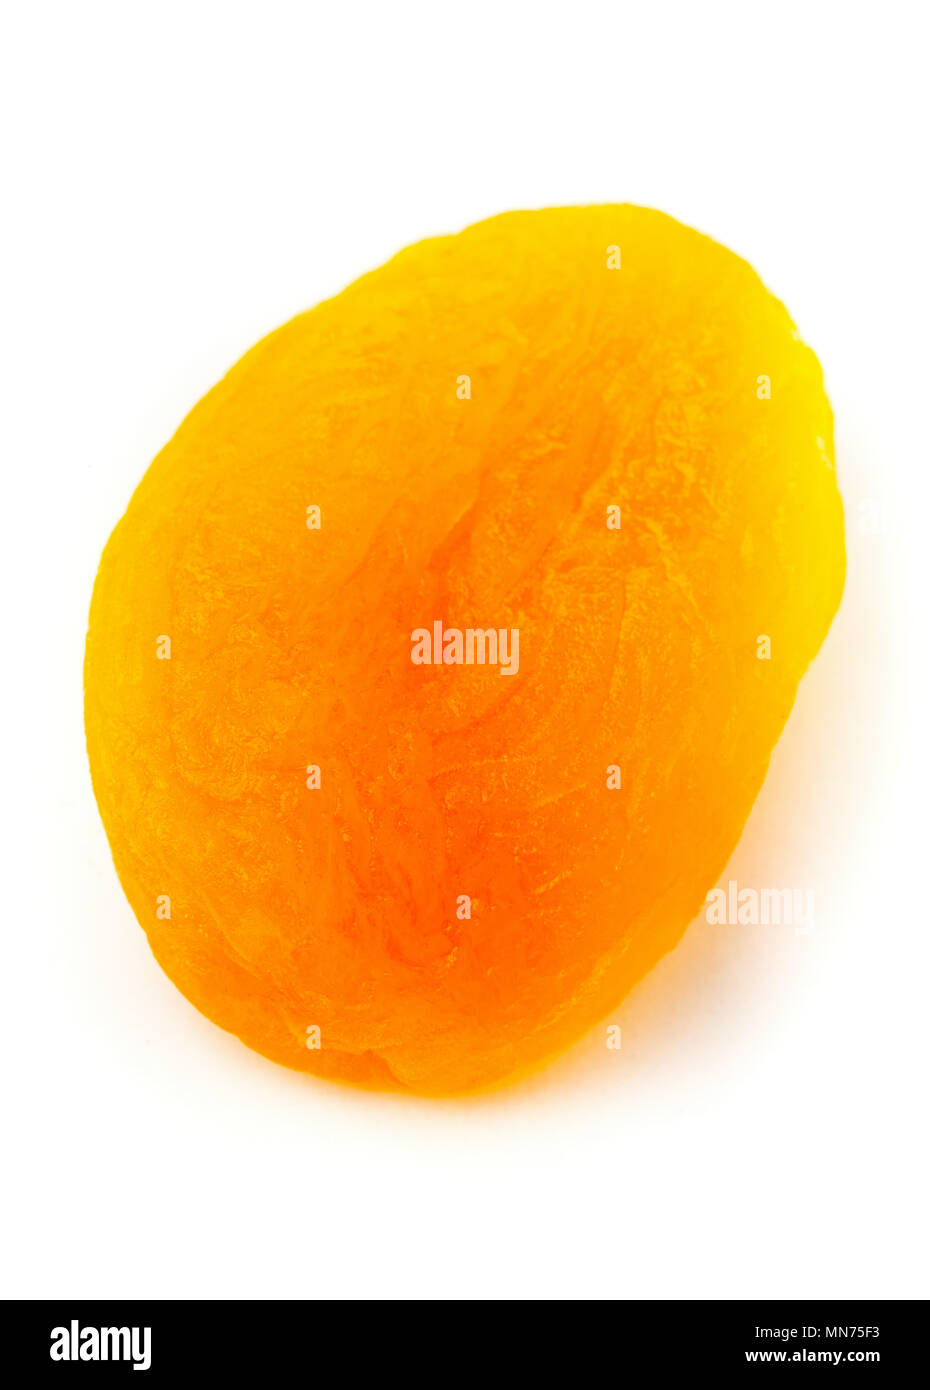 Single dried apricot fruit close up over white background with selective focus - Stock Image